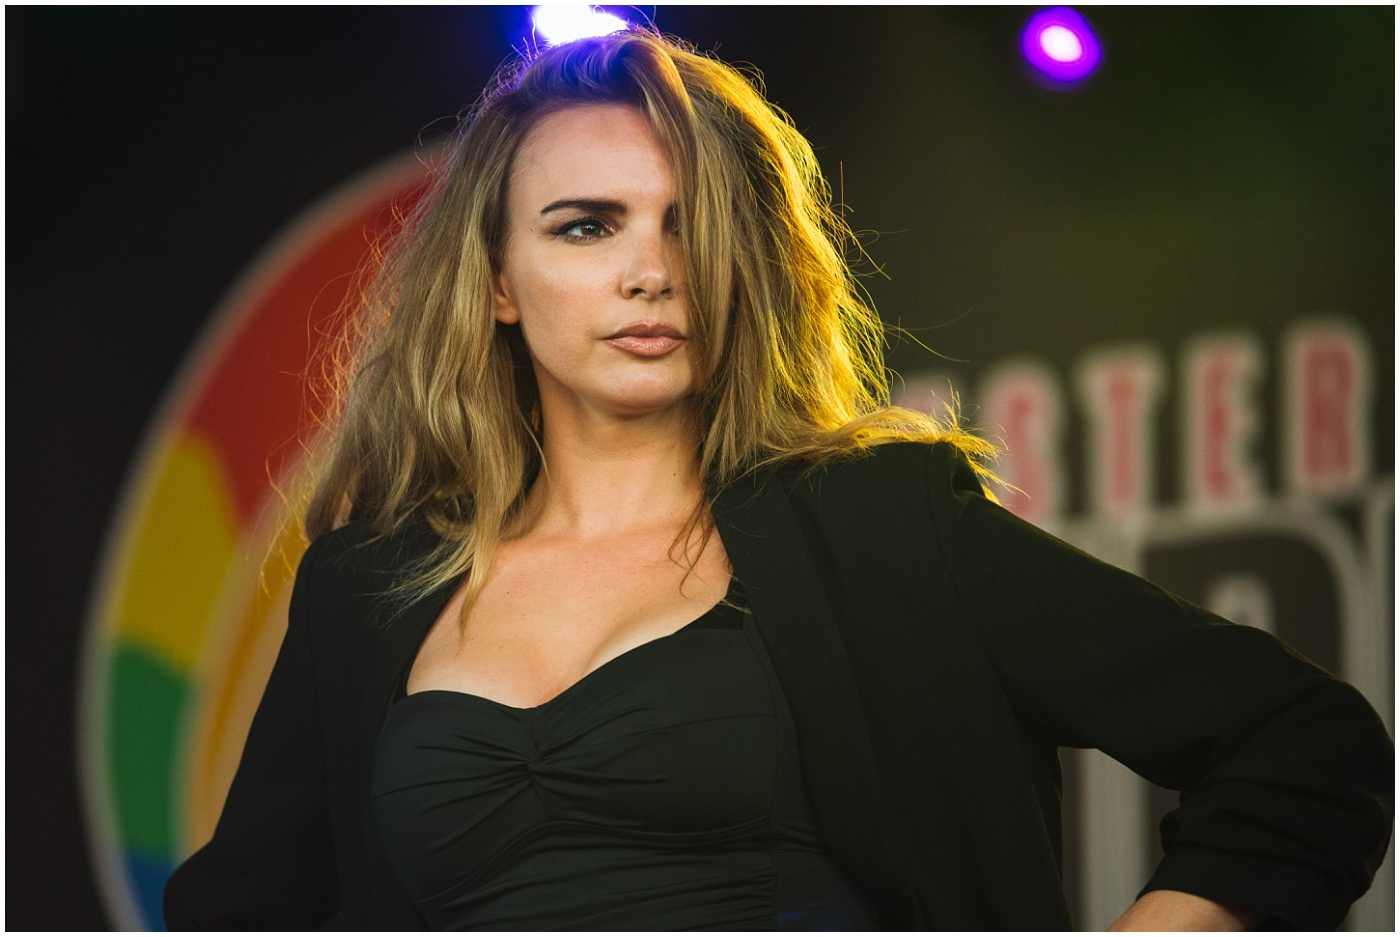 Nadine Coyle of Girls Aloud at Chester Pride